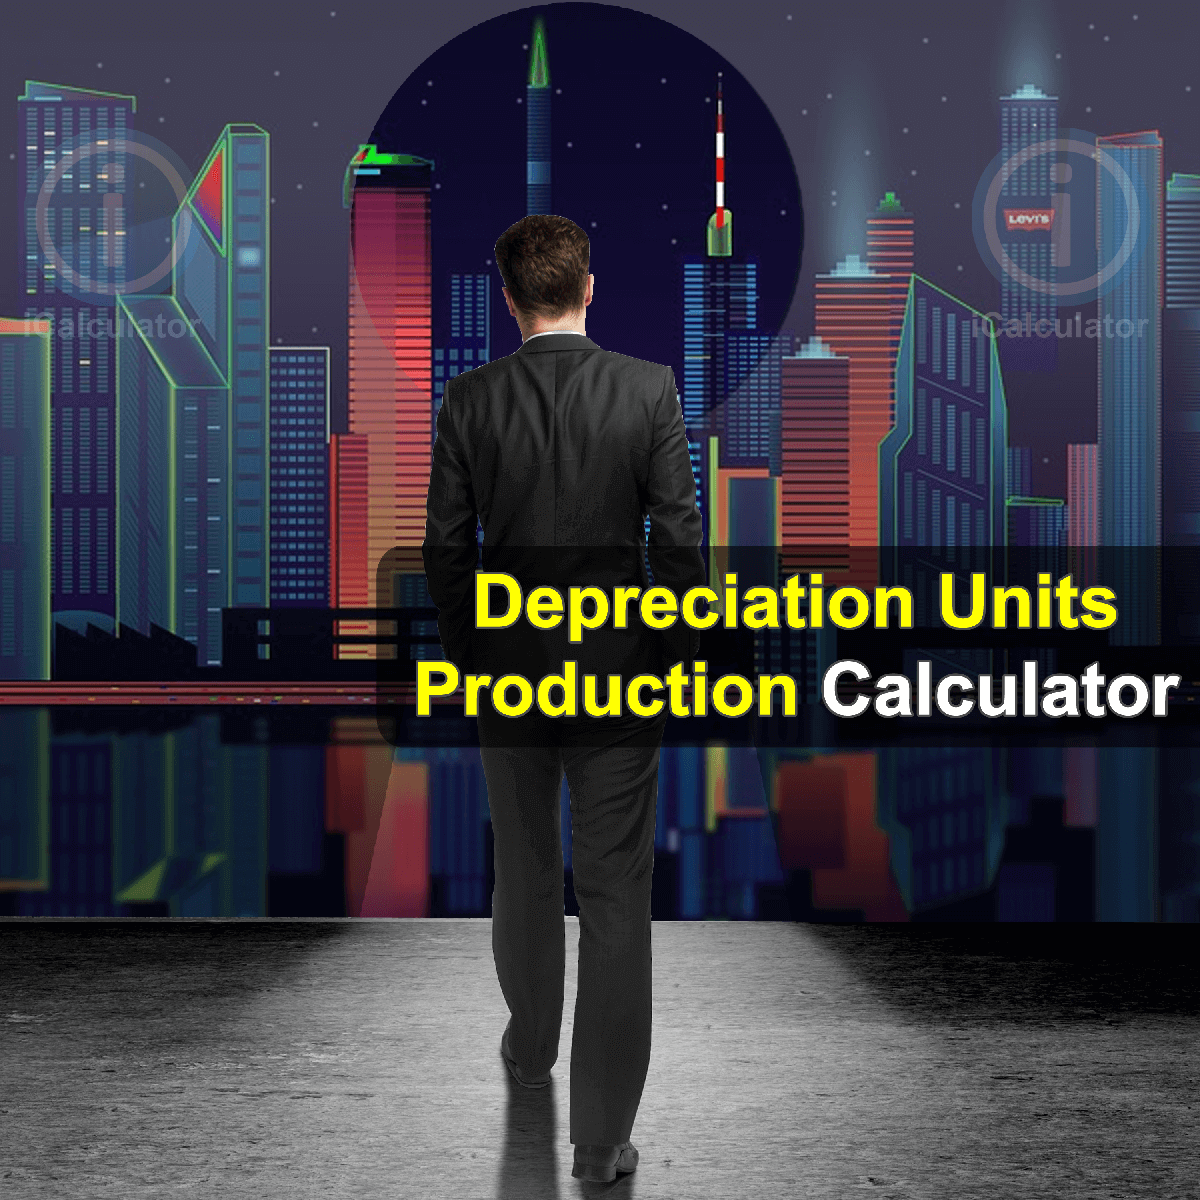 Units of Production Depreciation Calculator. This image provides details of how to calculate Units of Production Depreciation Ratio using a calculator and notepad. By using the Units of Production Depreciation Ratio formula, the Units of Production Depreciation Calculator provides a true calculation of the depreciation expense on an asset considering the actual usage of the asset, which makes it the most accurate metric for charging depreciation